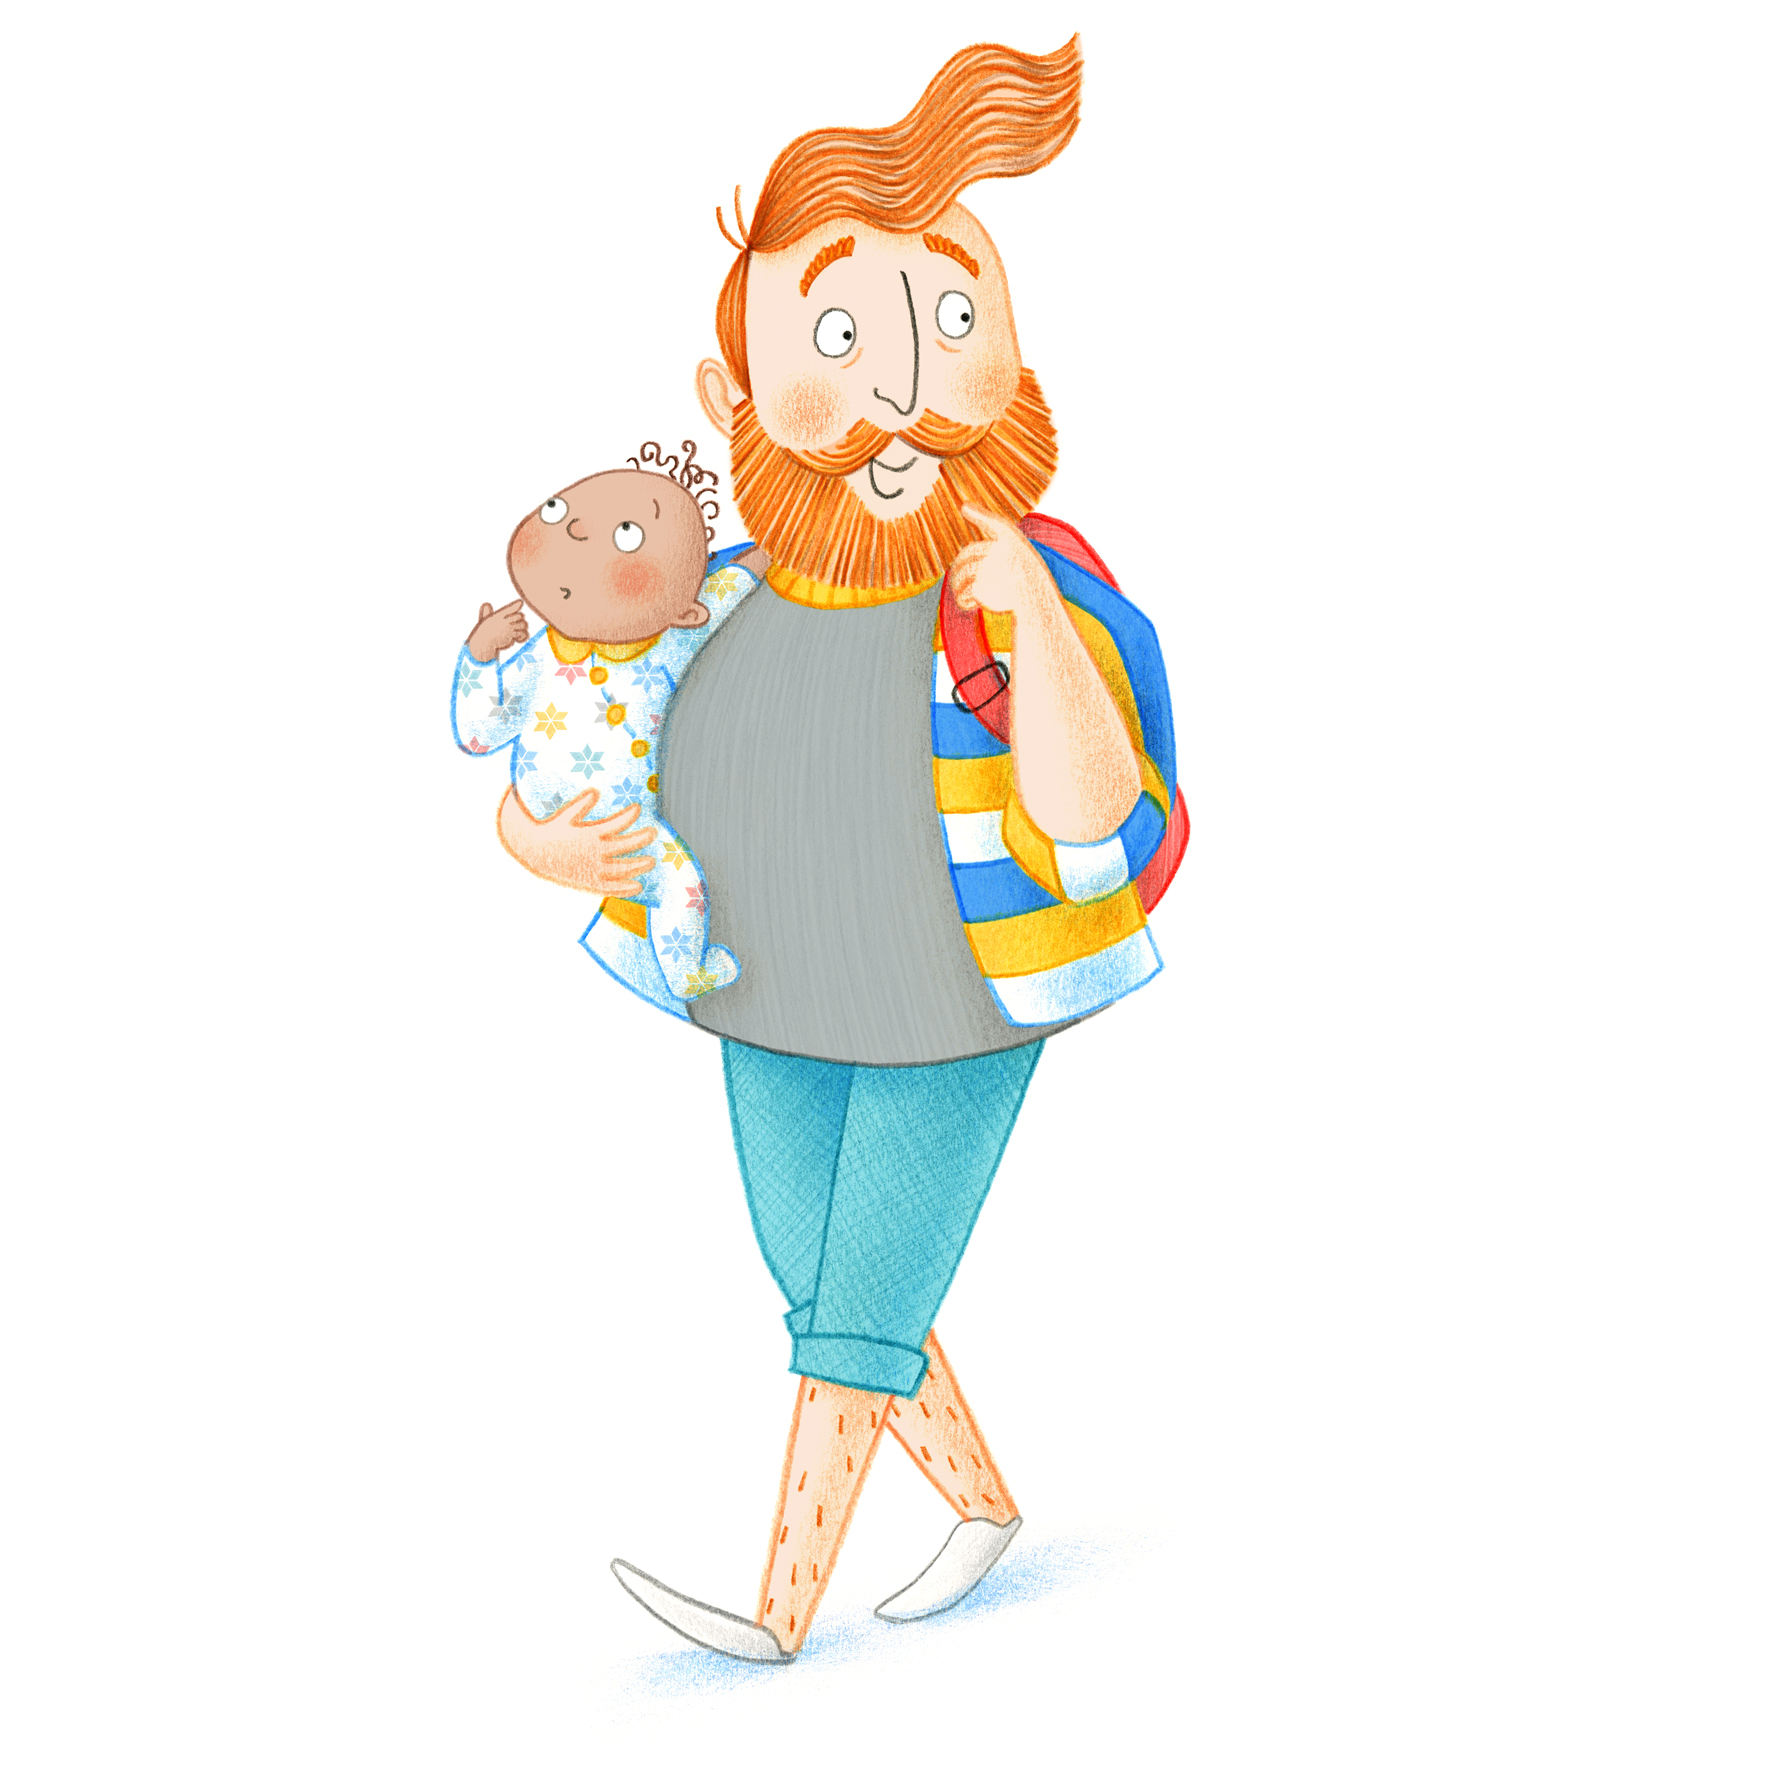 12_Westminster_Abbey_Illustration_Family_Trail_Education_Ailsa_Burrows_Dad and Baby_02.jpg